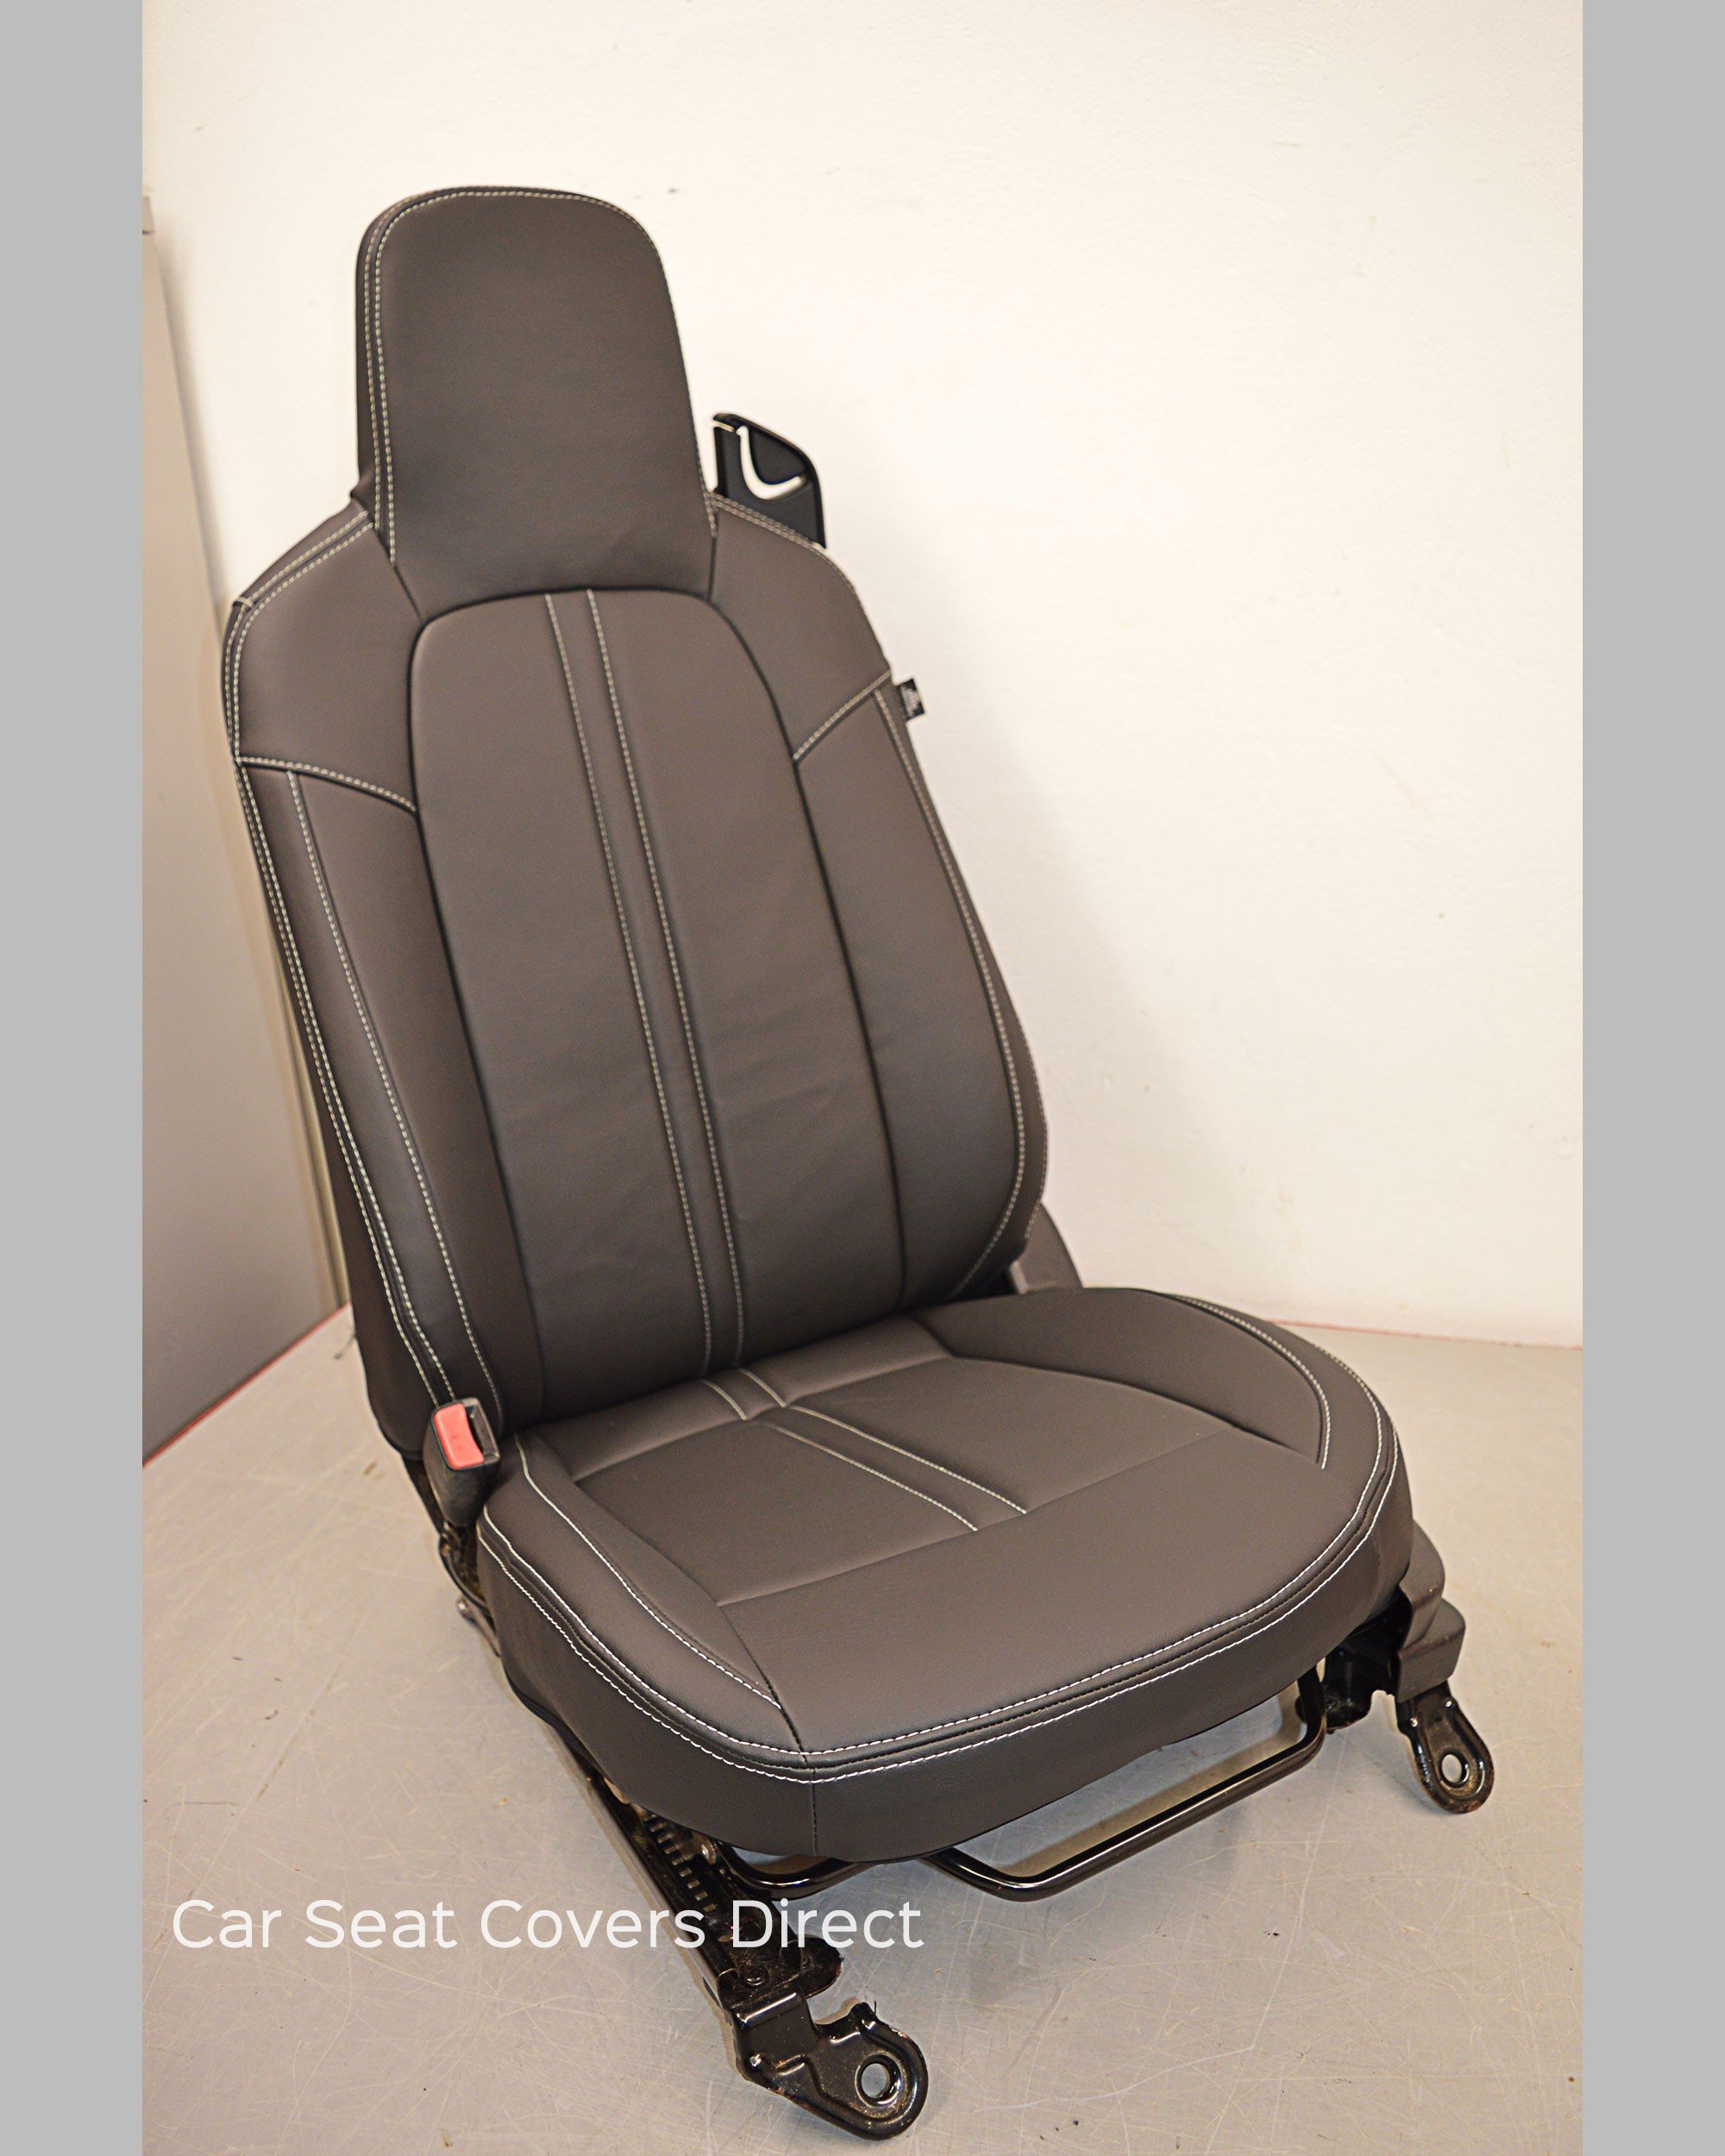 Custom Car Seat Covers Car Seat Covers Direct Tailored